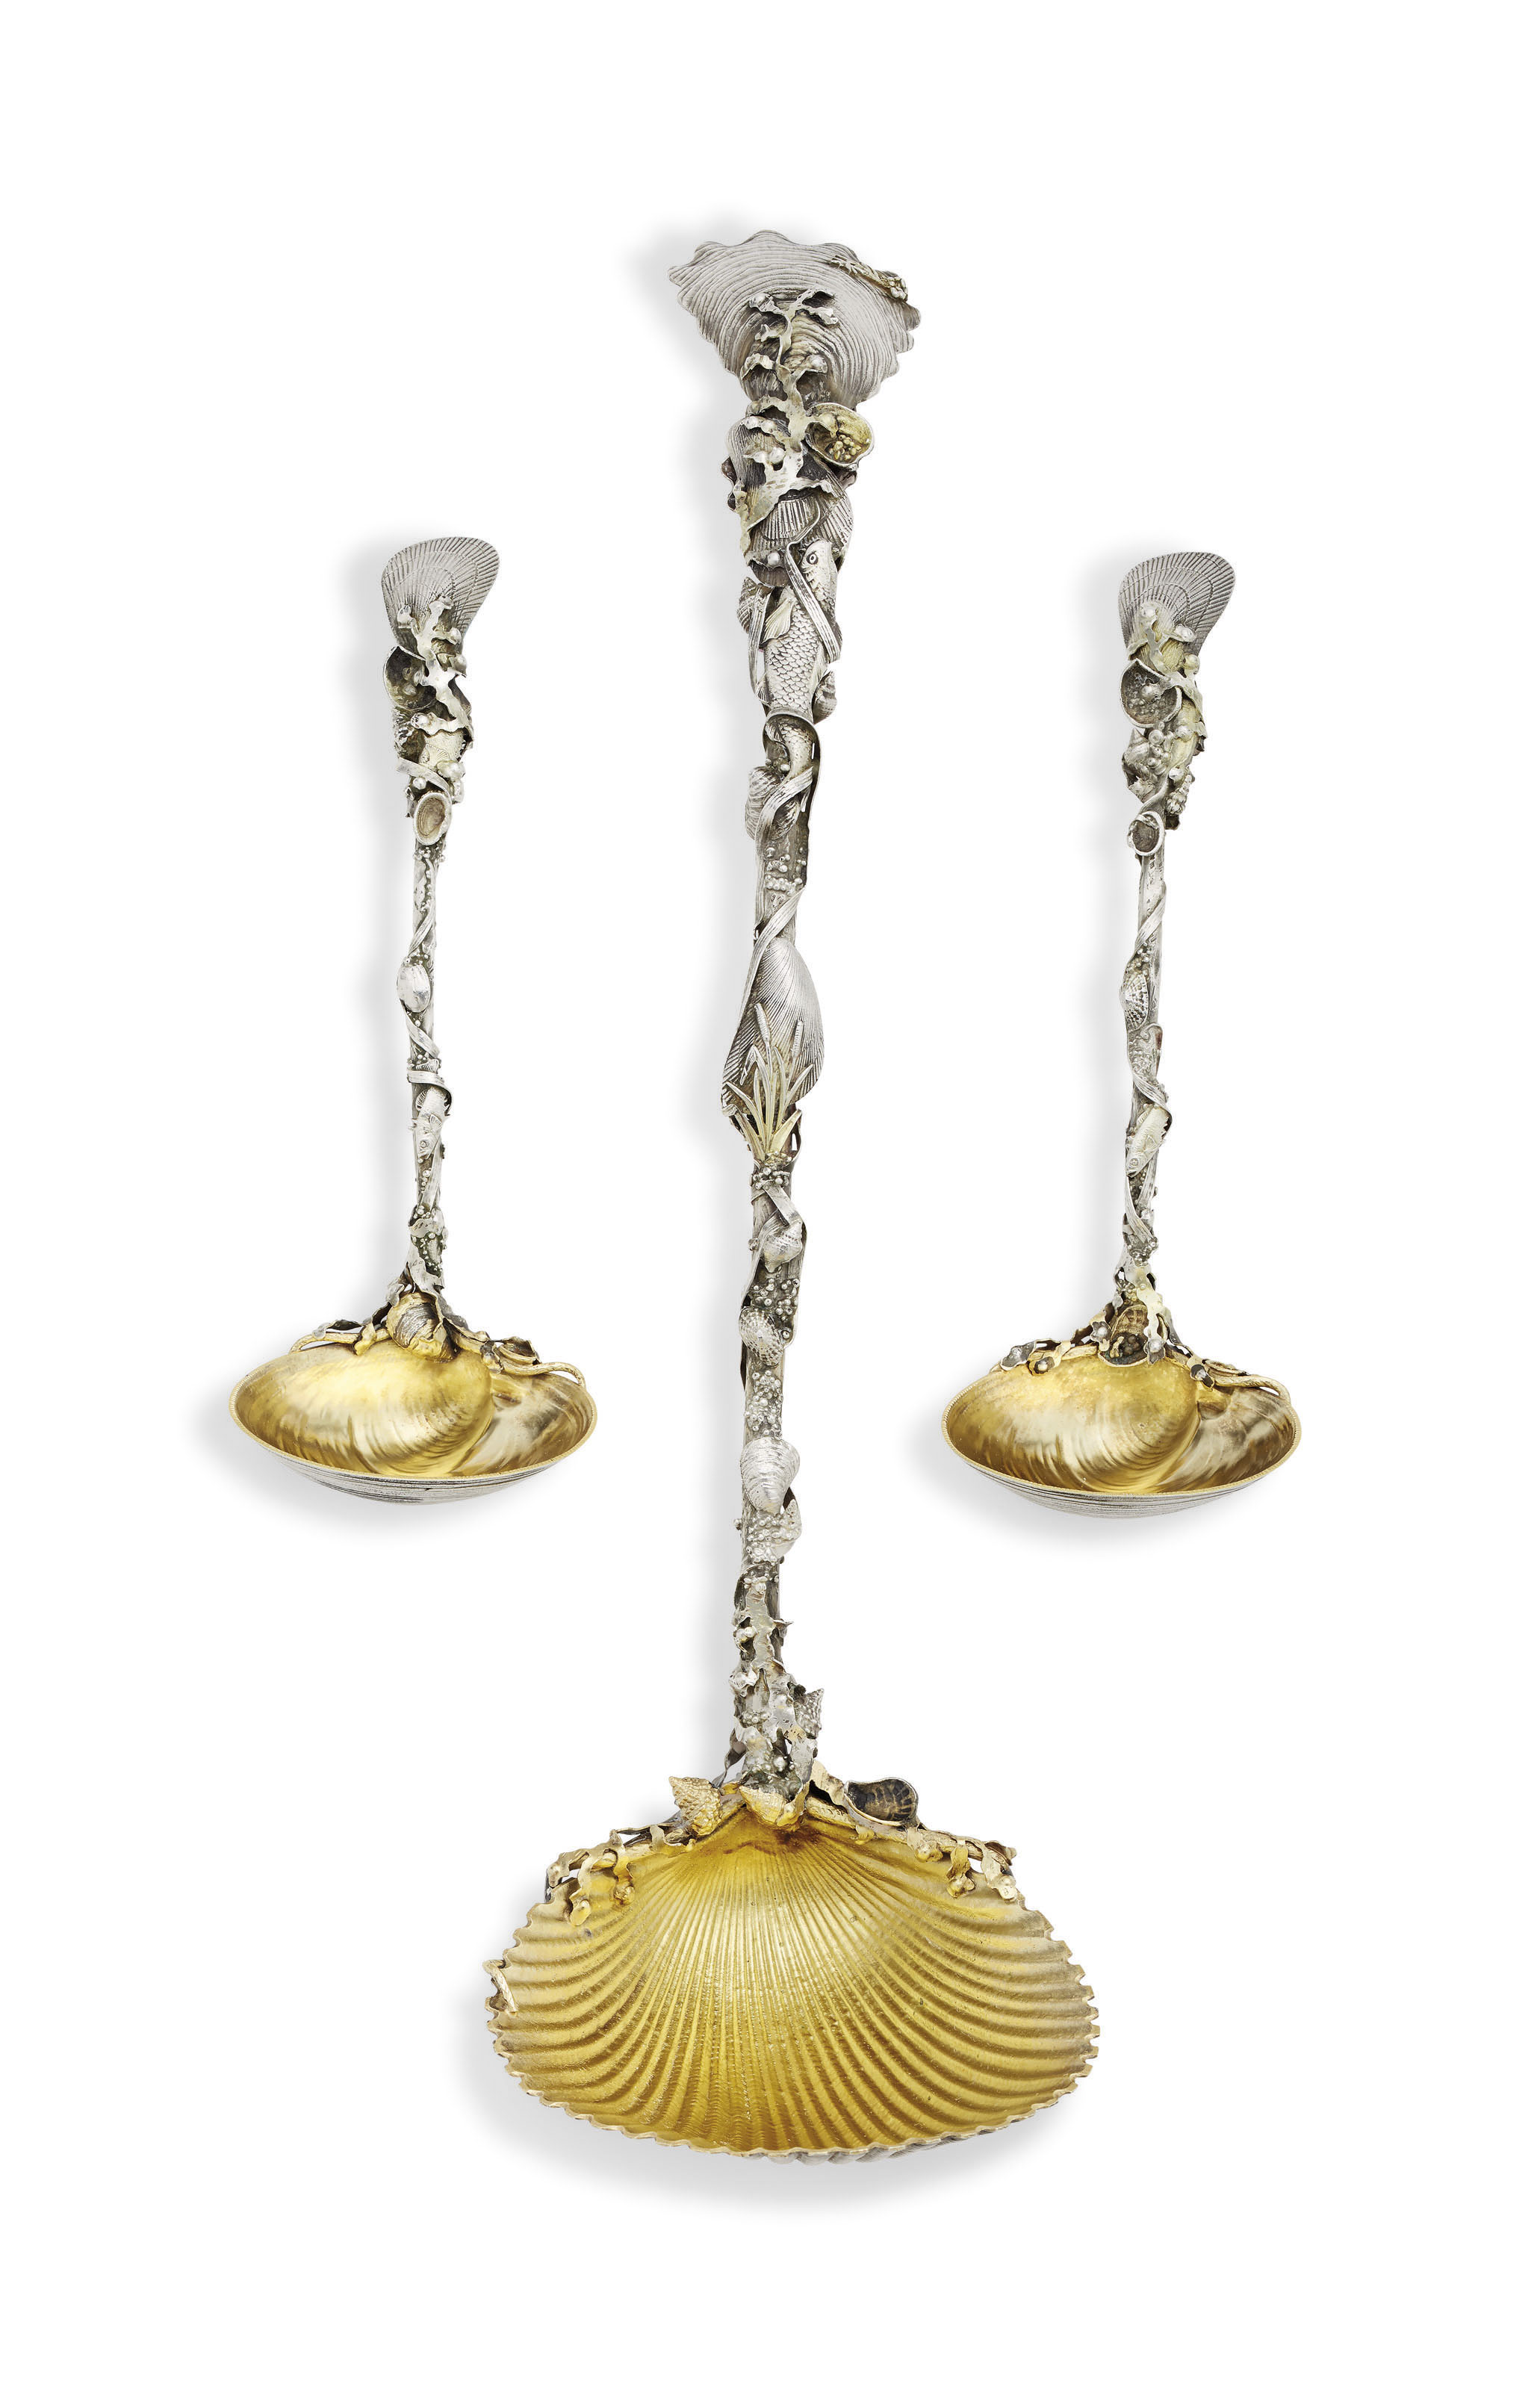 AN AMERICAN PARCEL-GILT SILVER PUNCH LADLE AND TWO MATCHING SAUCE LADLES